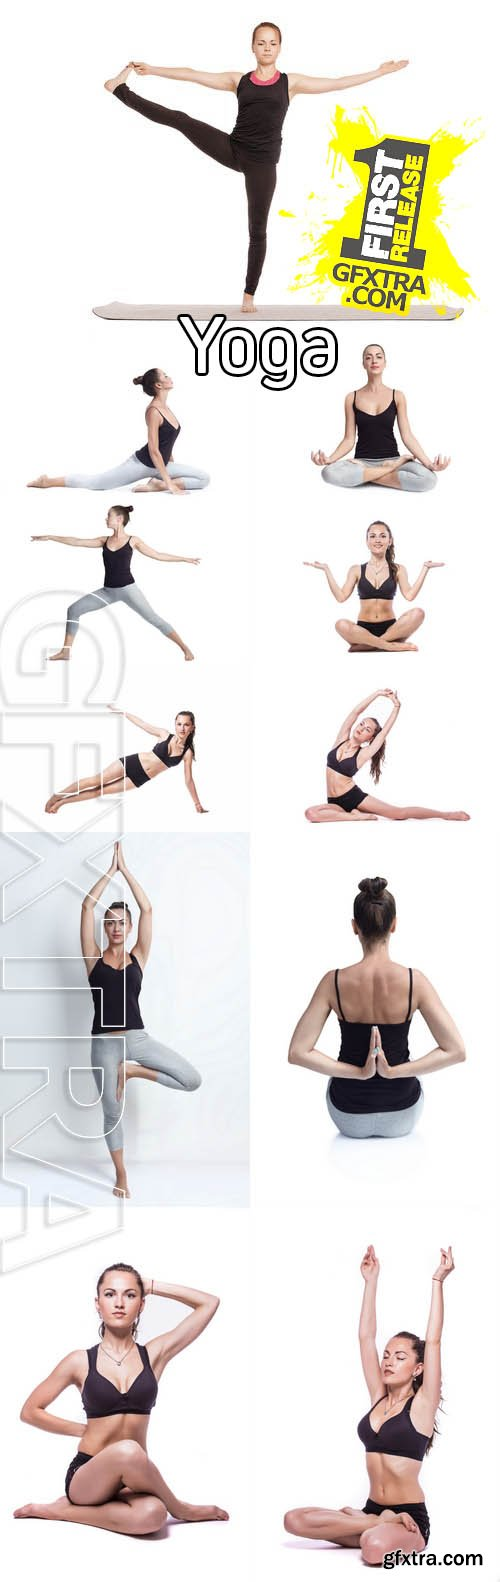 Stock Photos - Yoga